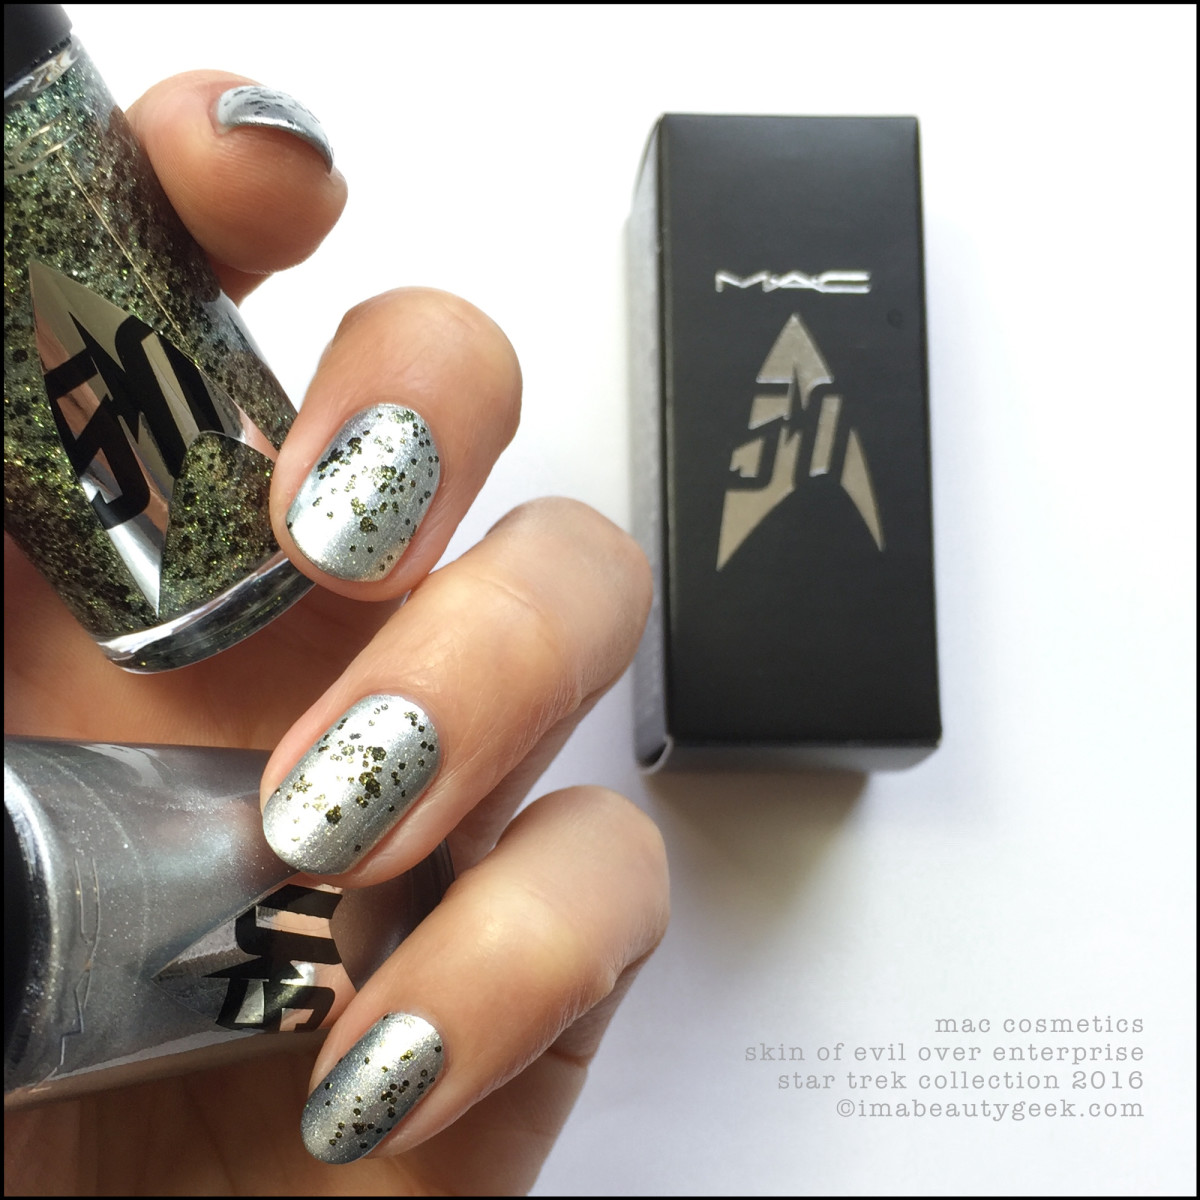 Mac Star Trek Collection Skin of Evil over Enterprise Nail Polish_MAC Cosmetics Star Trek Polishes